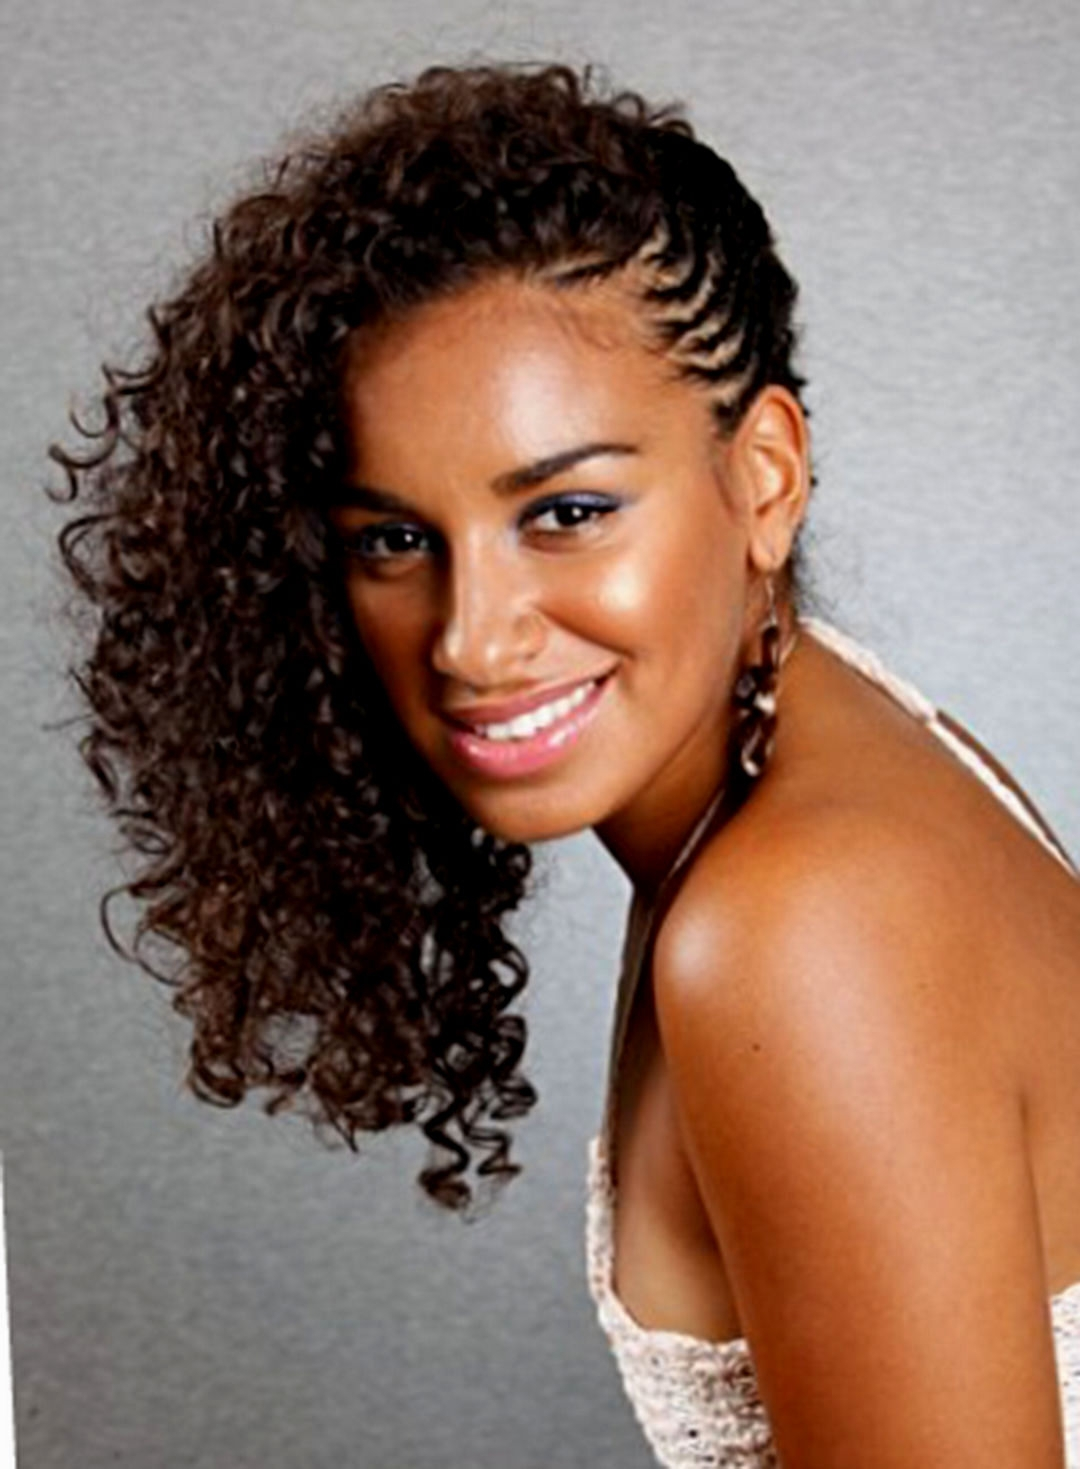 Current Braided Hairstyles For Naturally Curly Hair For Braided Hairstyles Naturally Curly Hair Easy Of Curly Braiding (View 4 of 15)